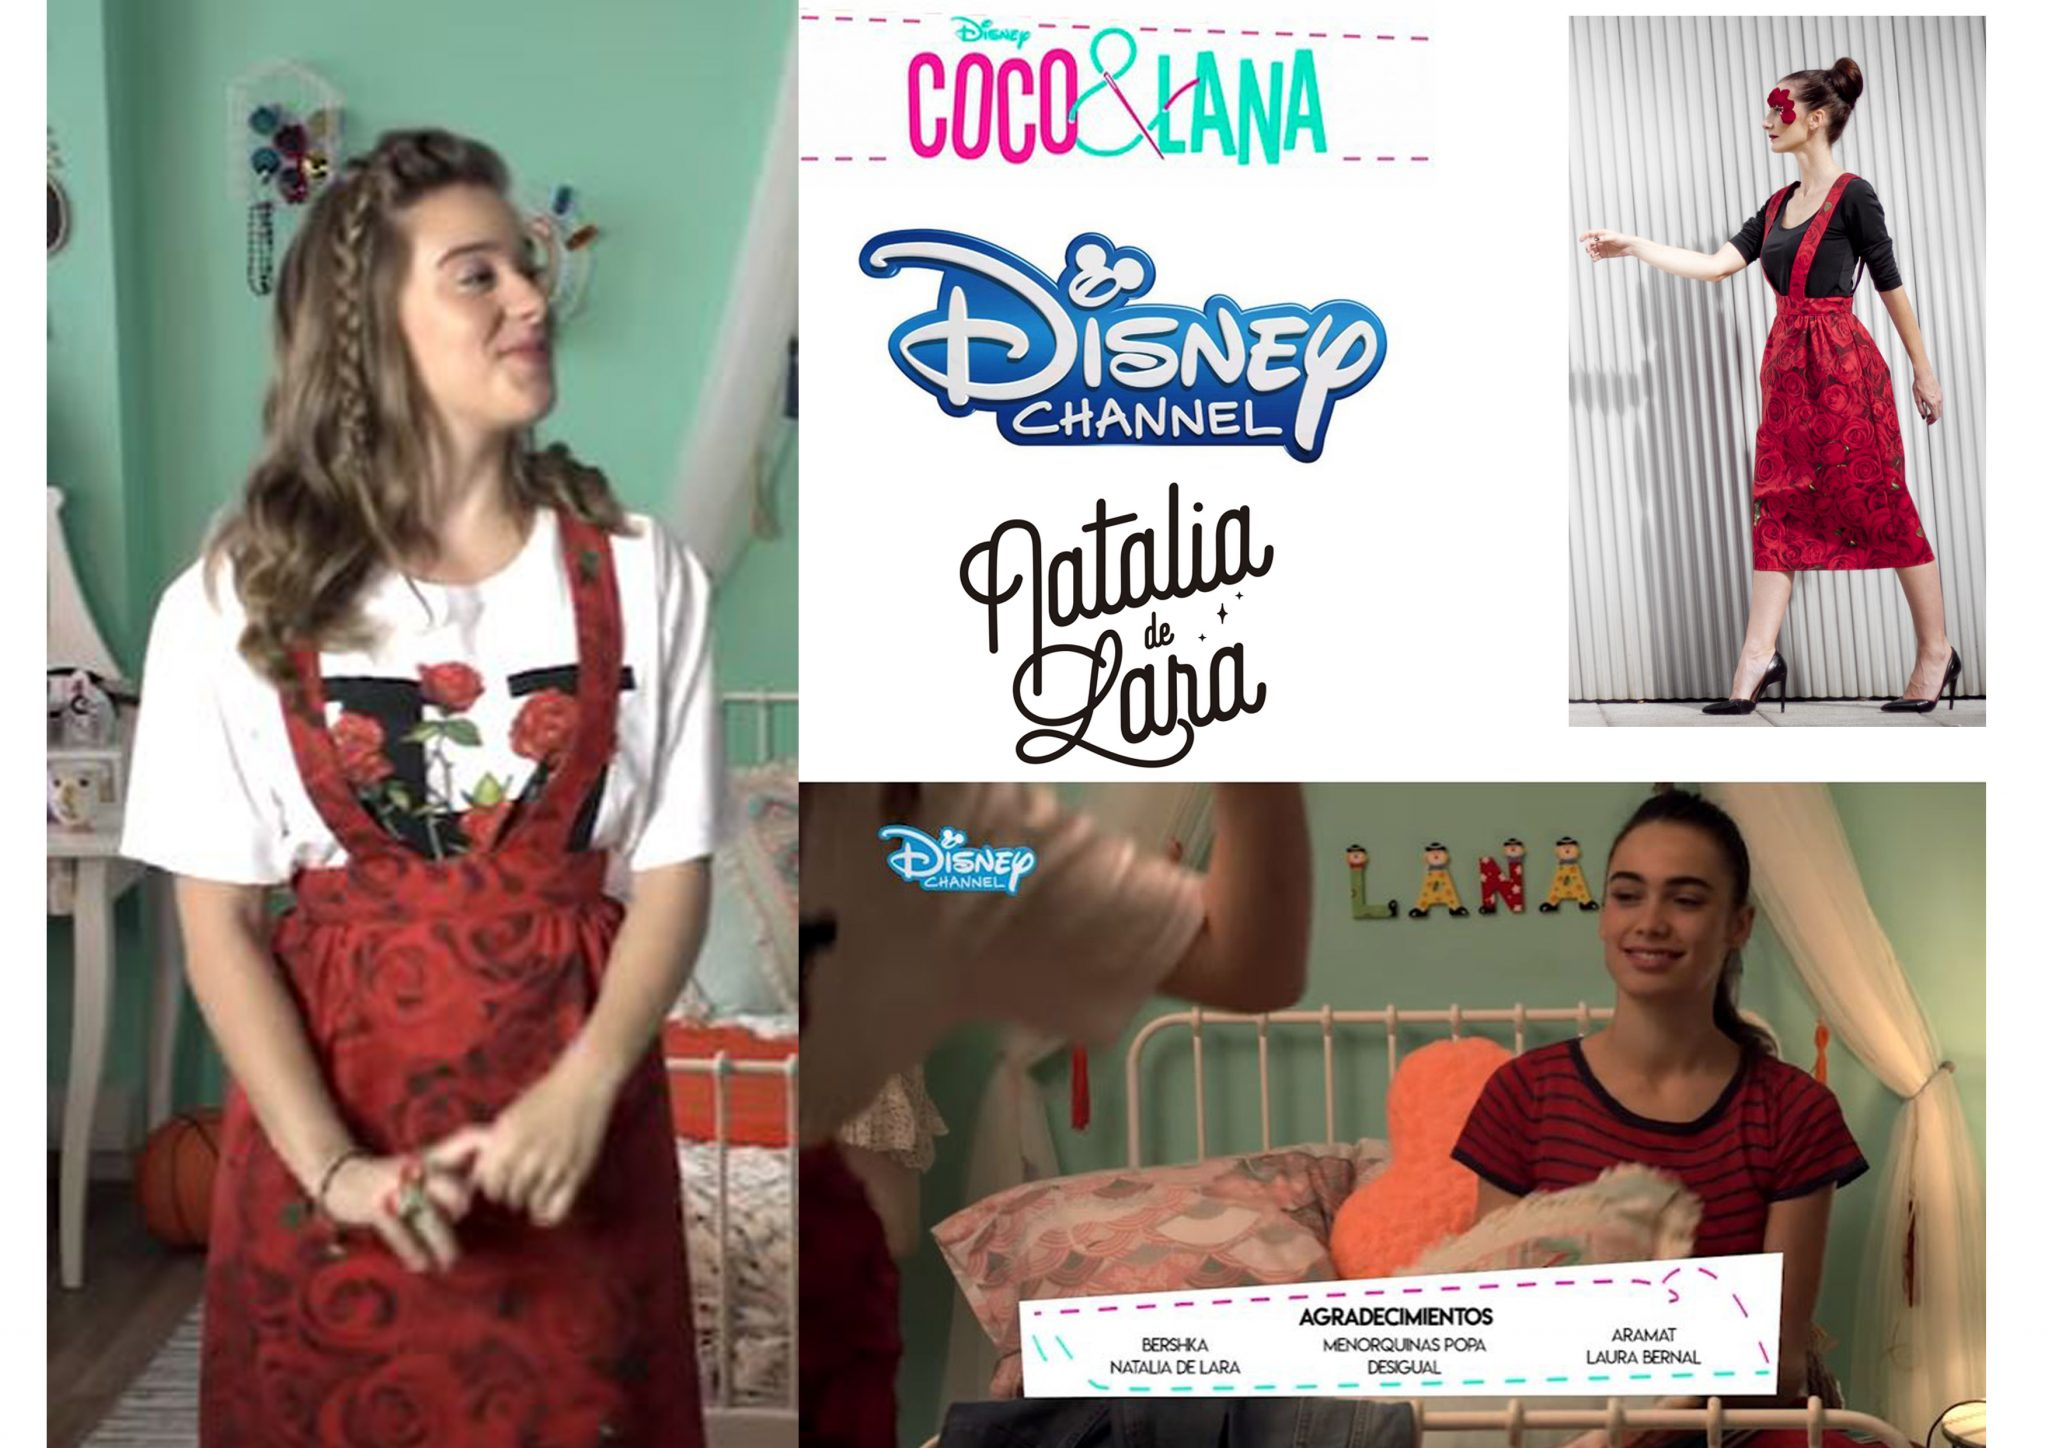 8 DISNEY CHANNEL -COCO LANA